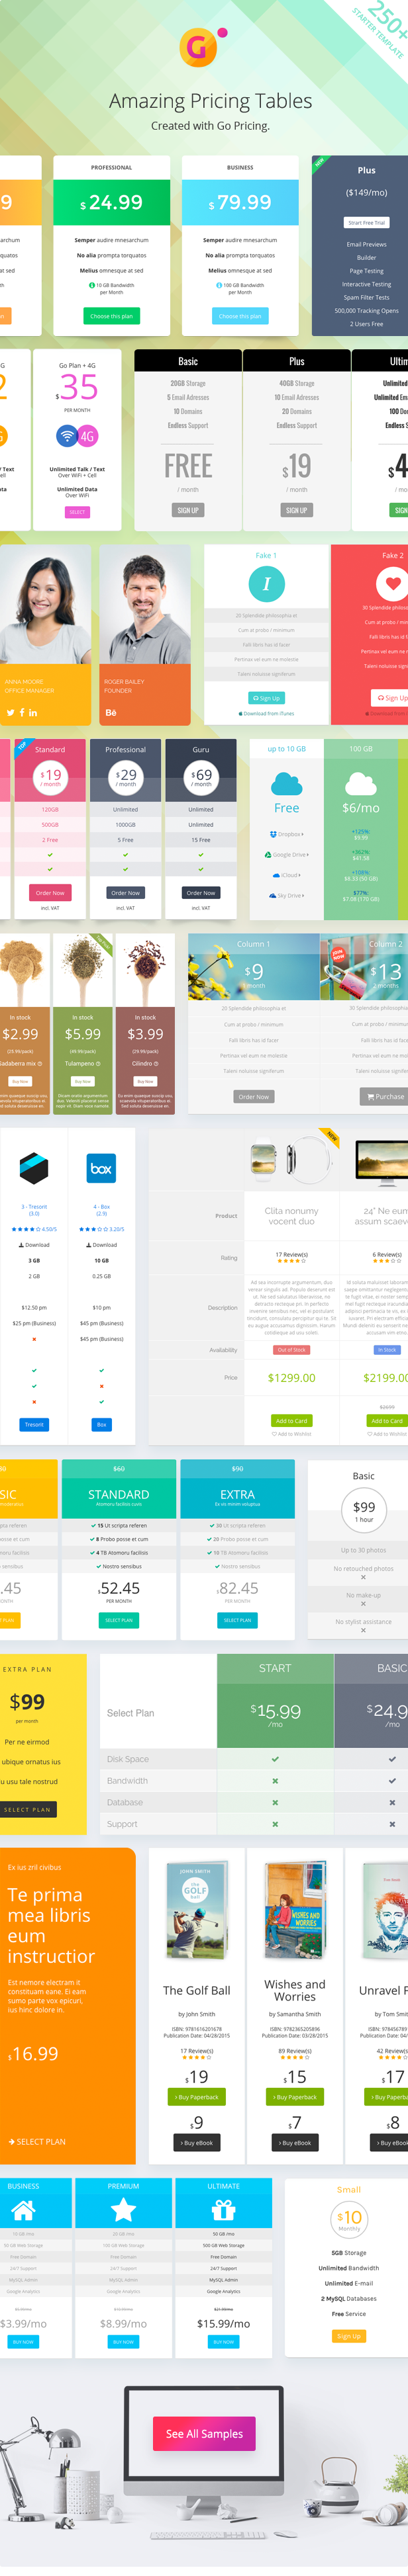 Go Pricing - WordPress Responsive Pricing Tables - 22